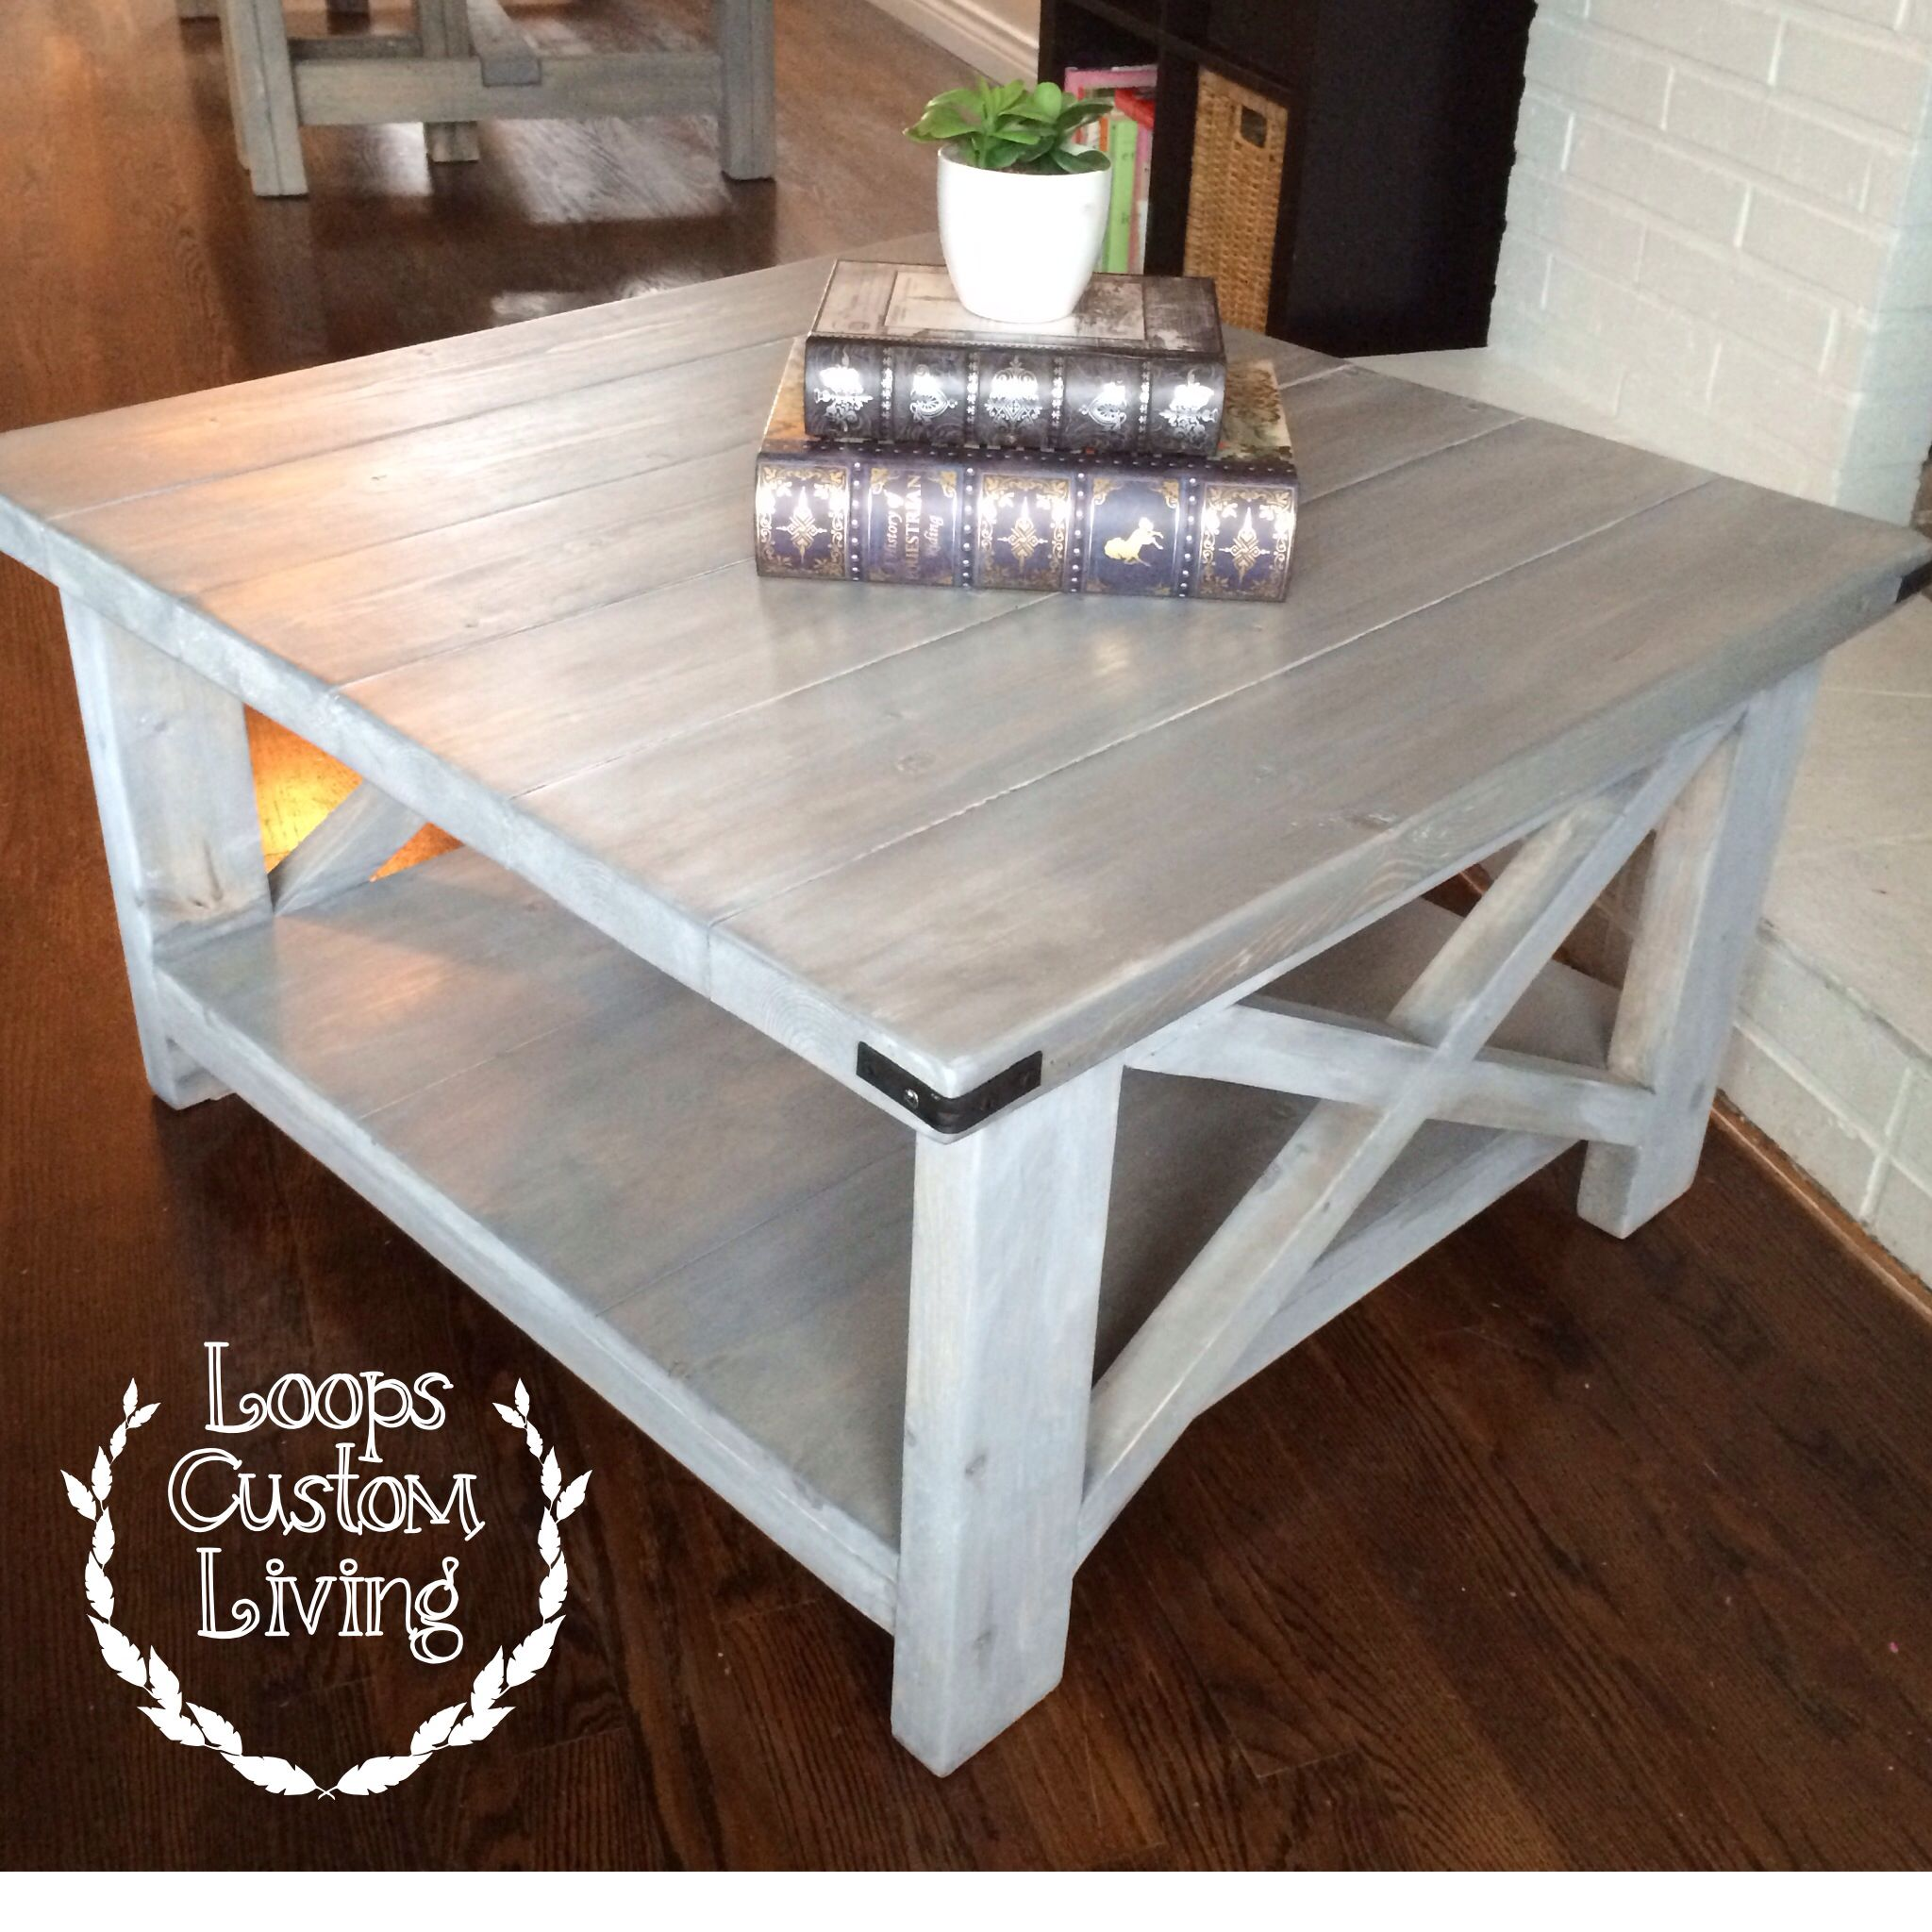 White Washed Grey Industrial Square Coffee Table Coffee Table Farmhouse Coffee Table Wood Coffee Table Square